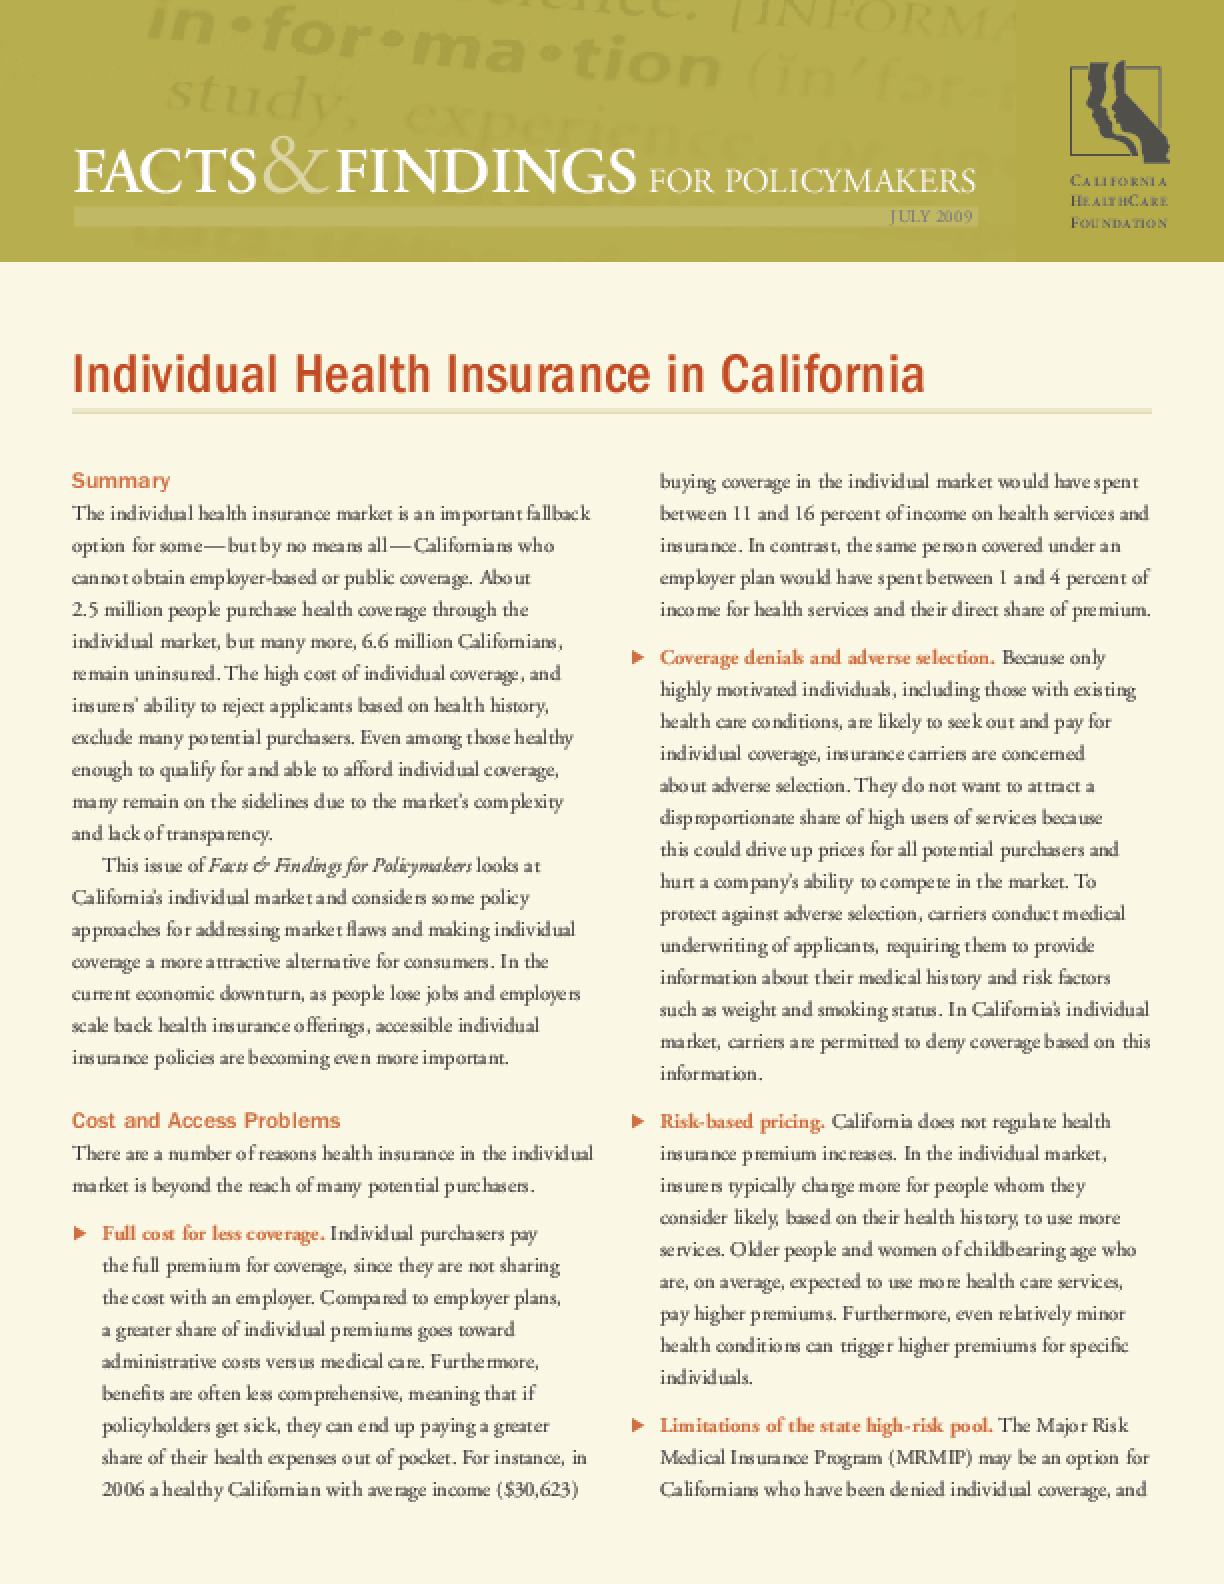 Facts and Findings for Policymakers: Individual Health Insurance in California